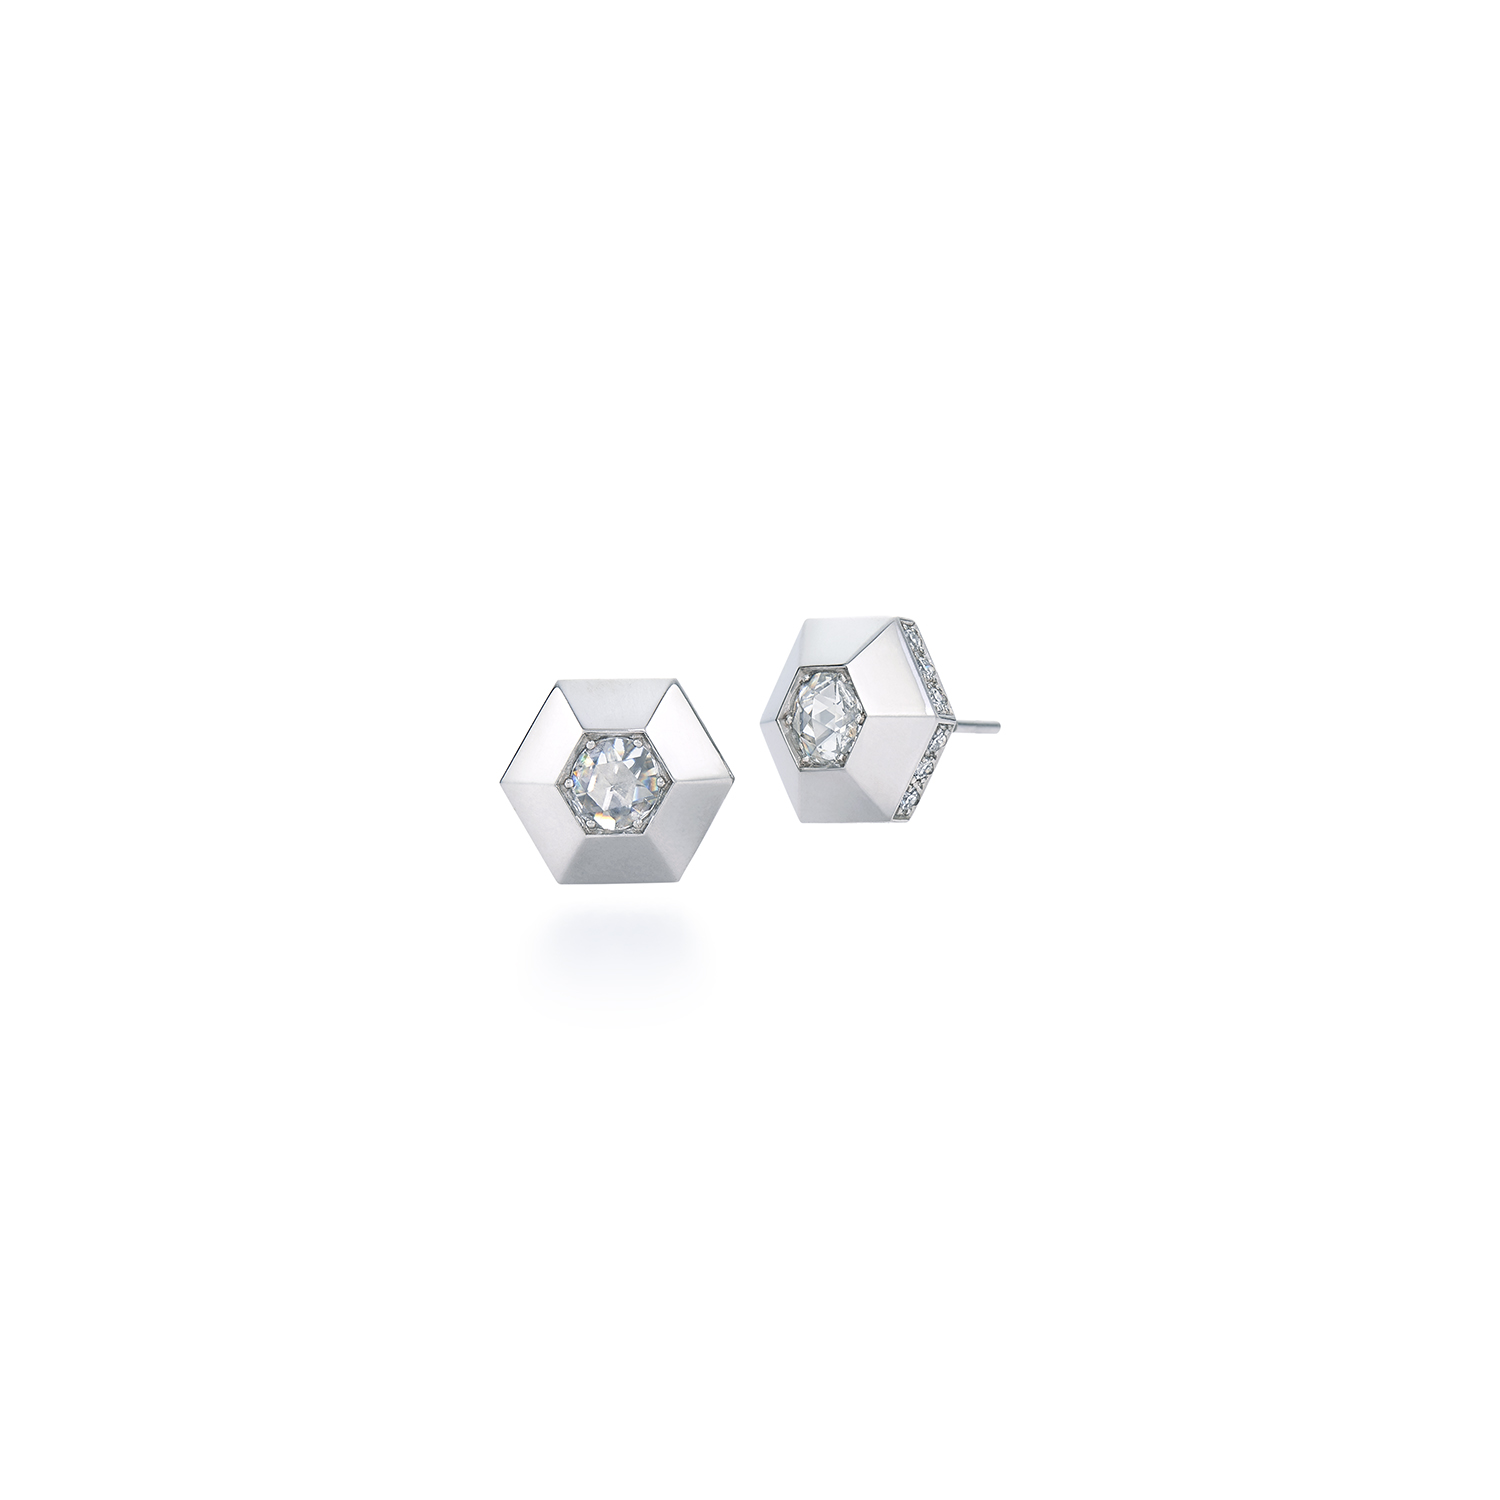 Signed Fred Leighton Hexagonal Diamond and Platinum Stud Earrings E1086-DIA